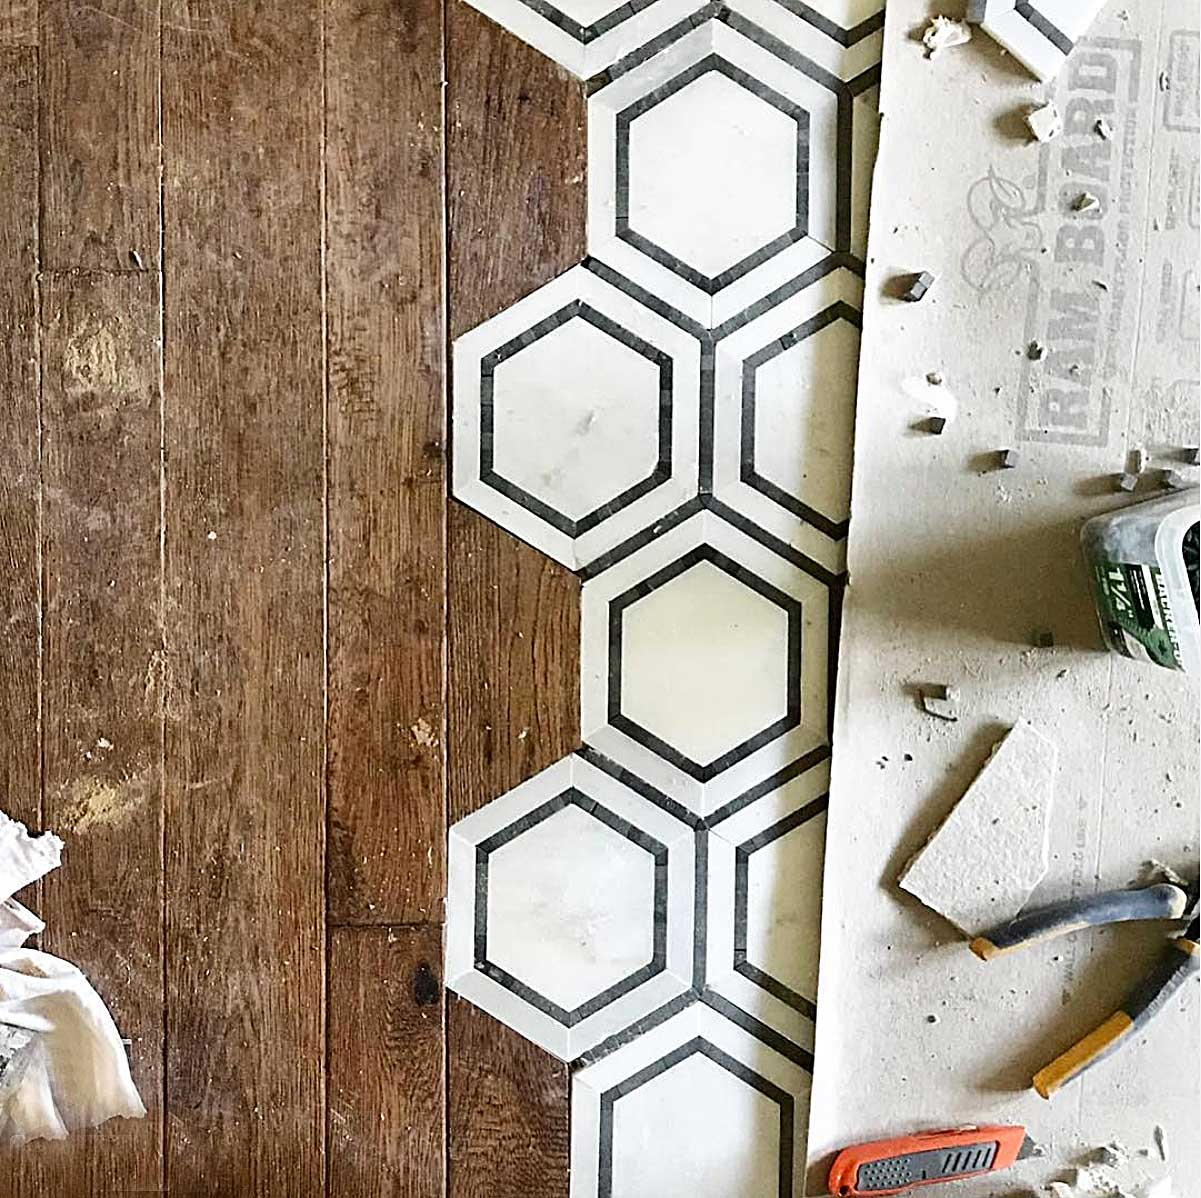 painted white saves money - HD1201×1198